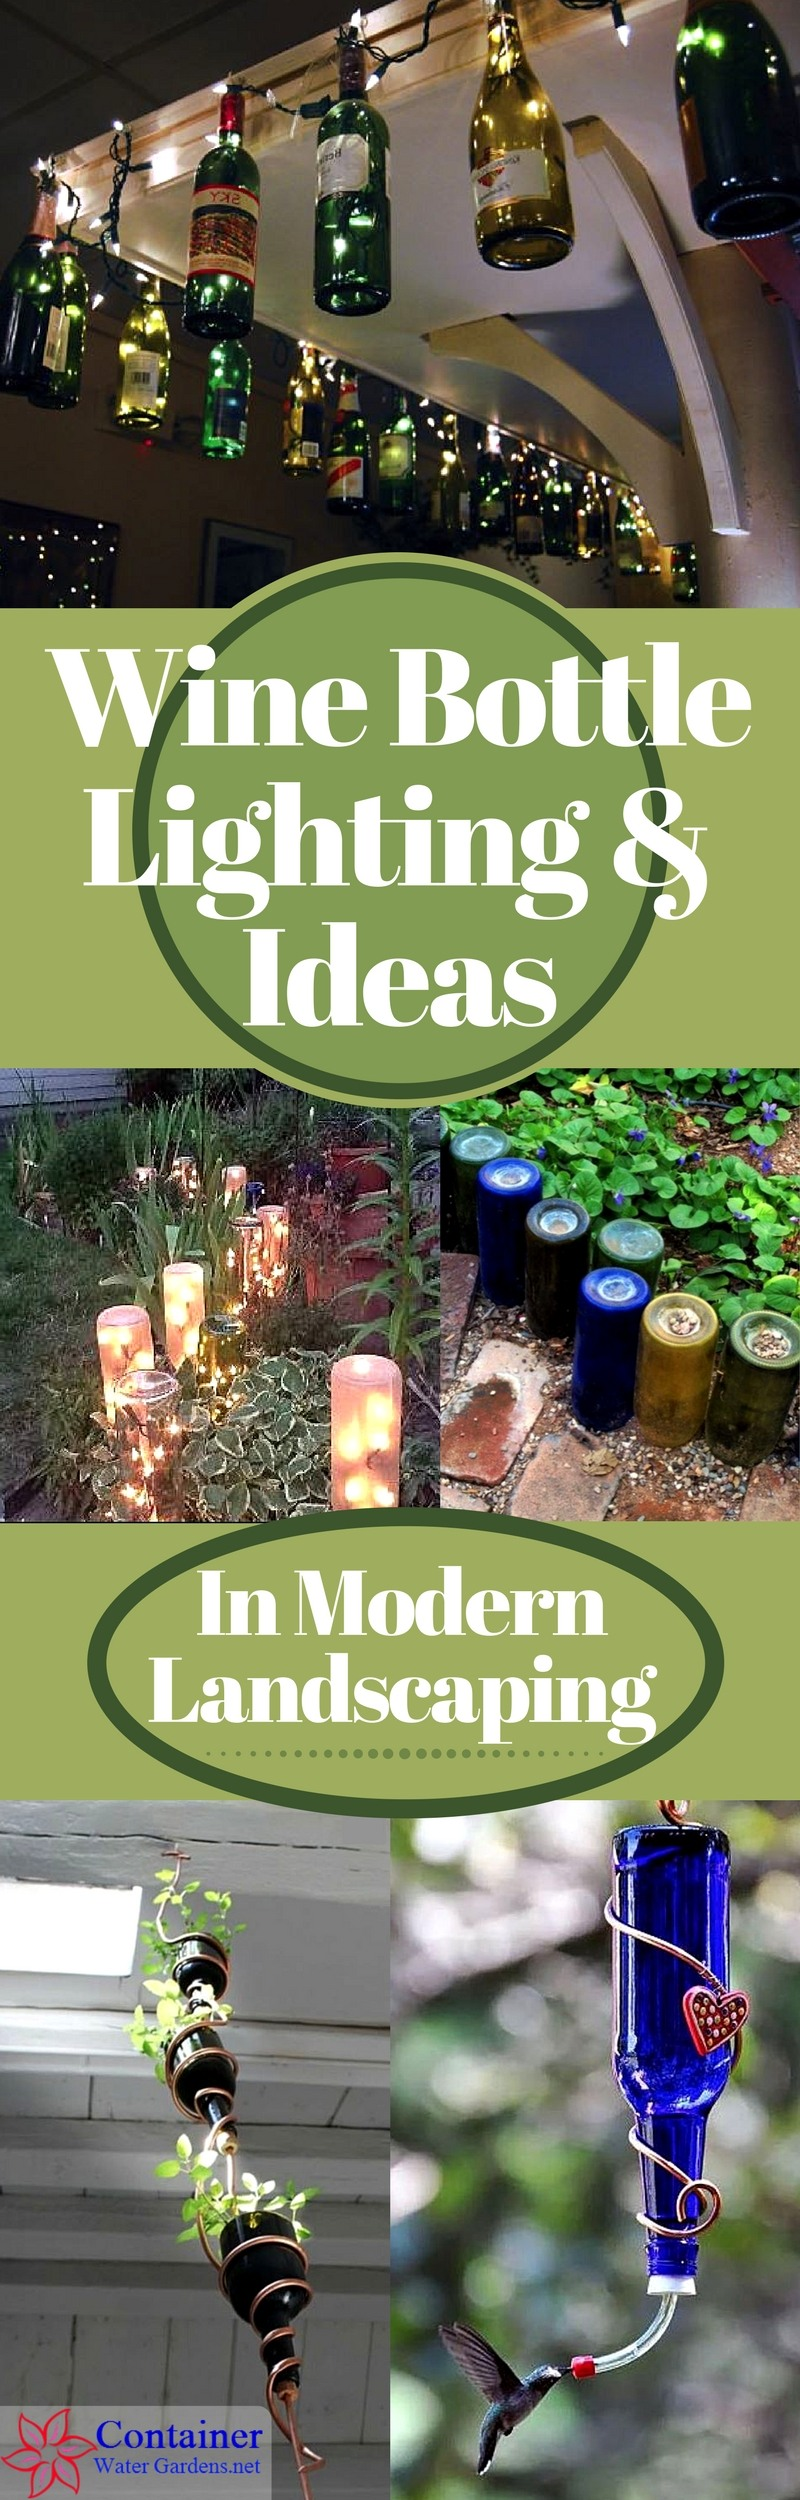 Wine Bottle Lighting & Ideas In Landscaping